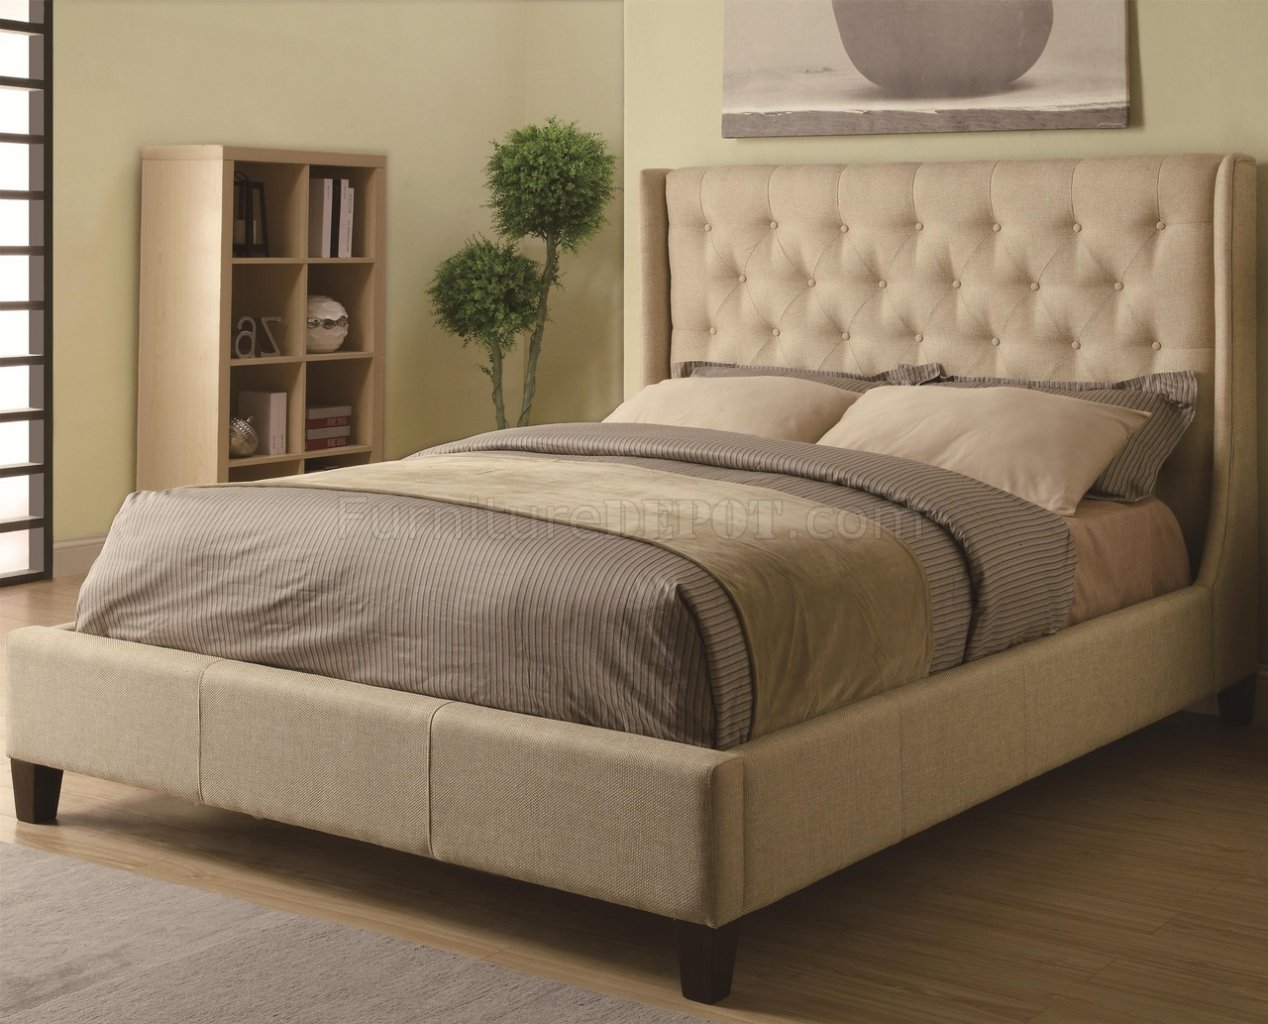 Owen 300332 Upholstered Bed in Tan Fabric by Coaster